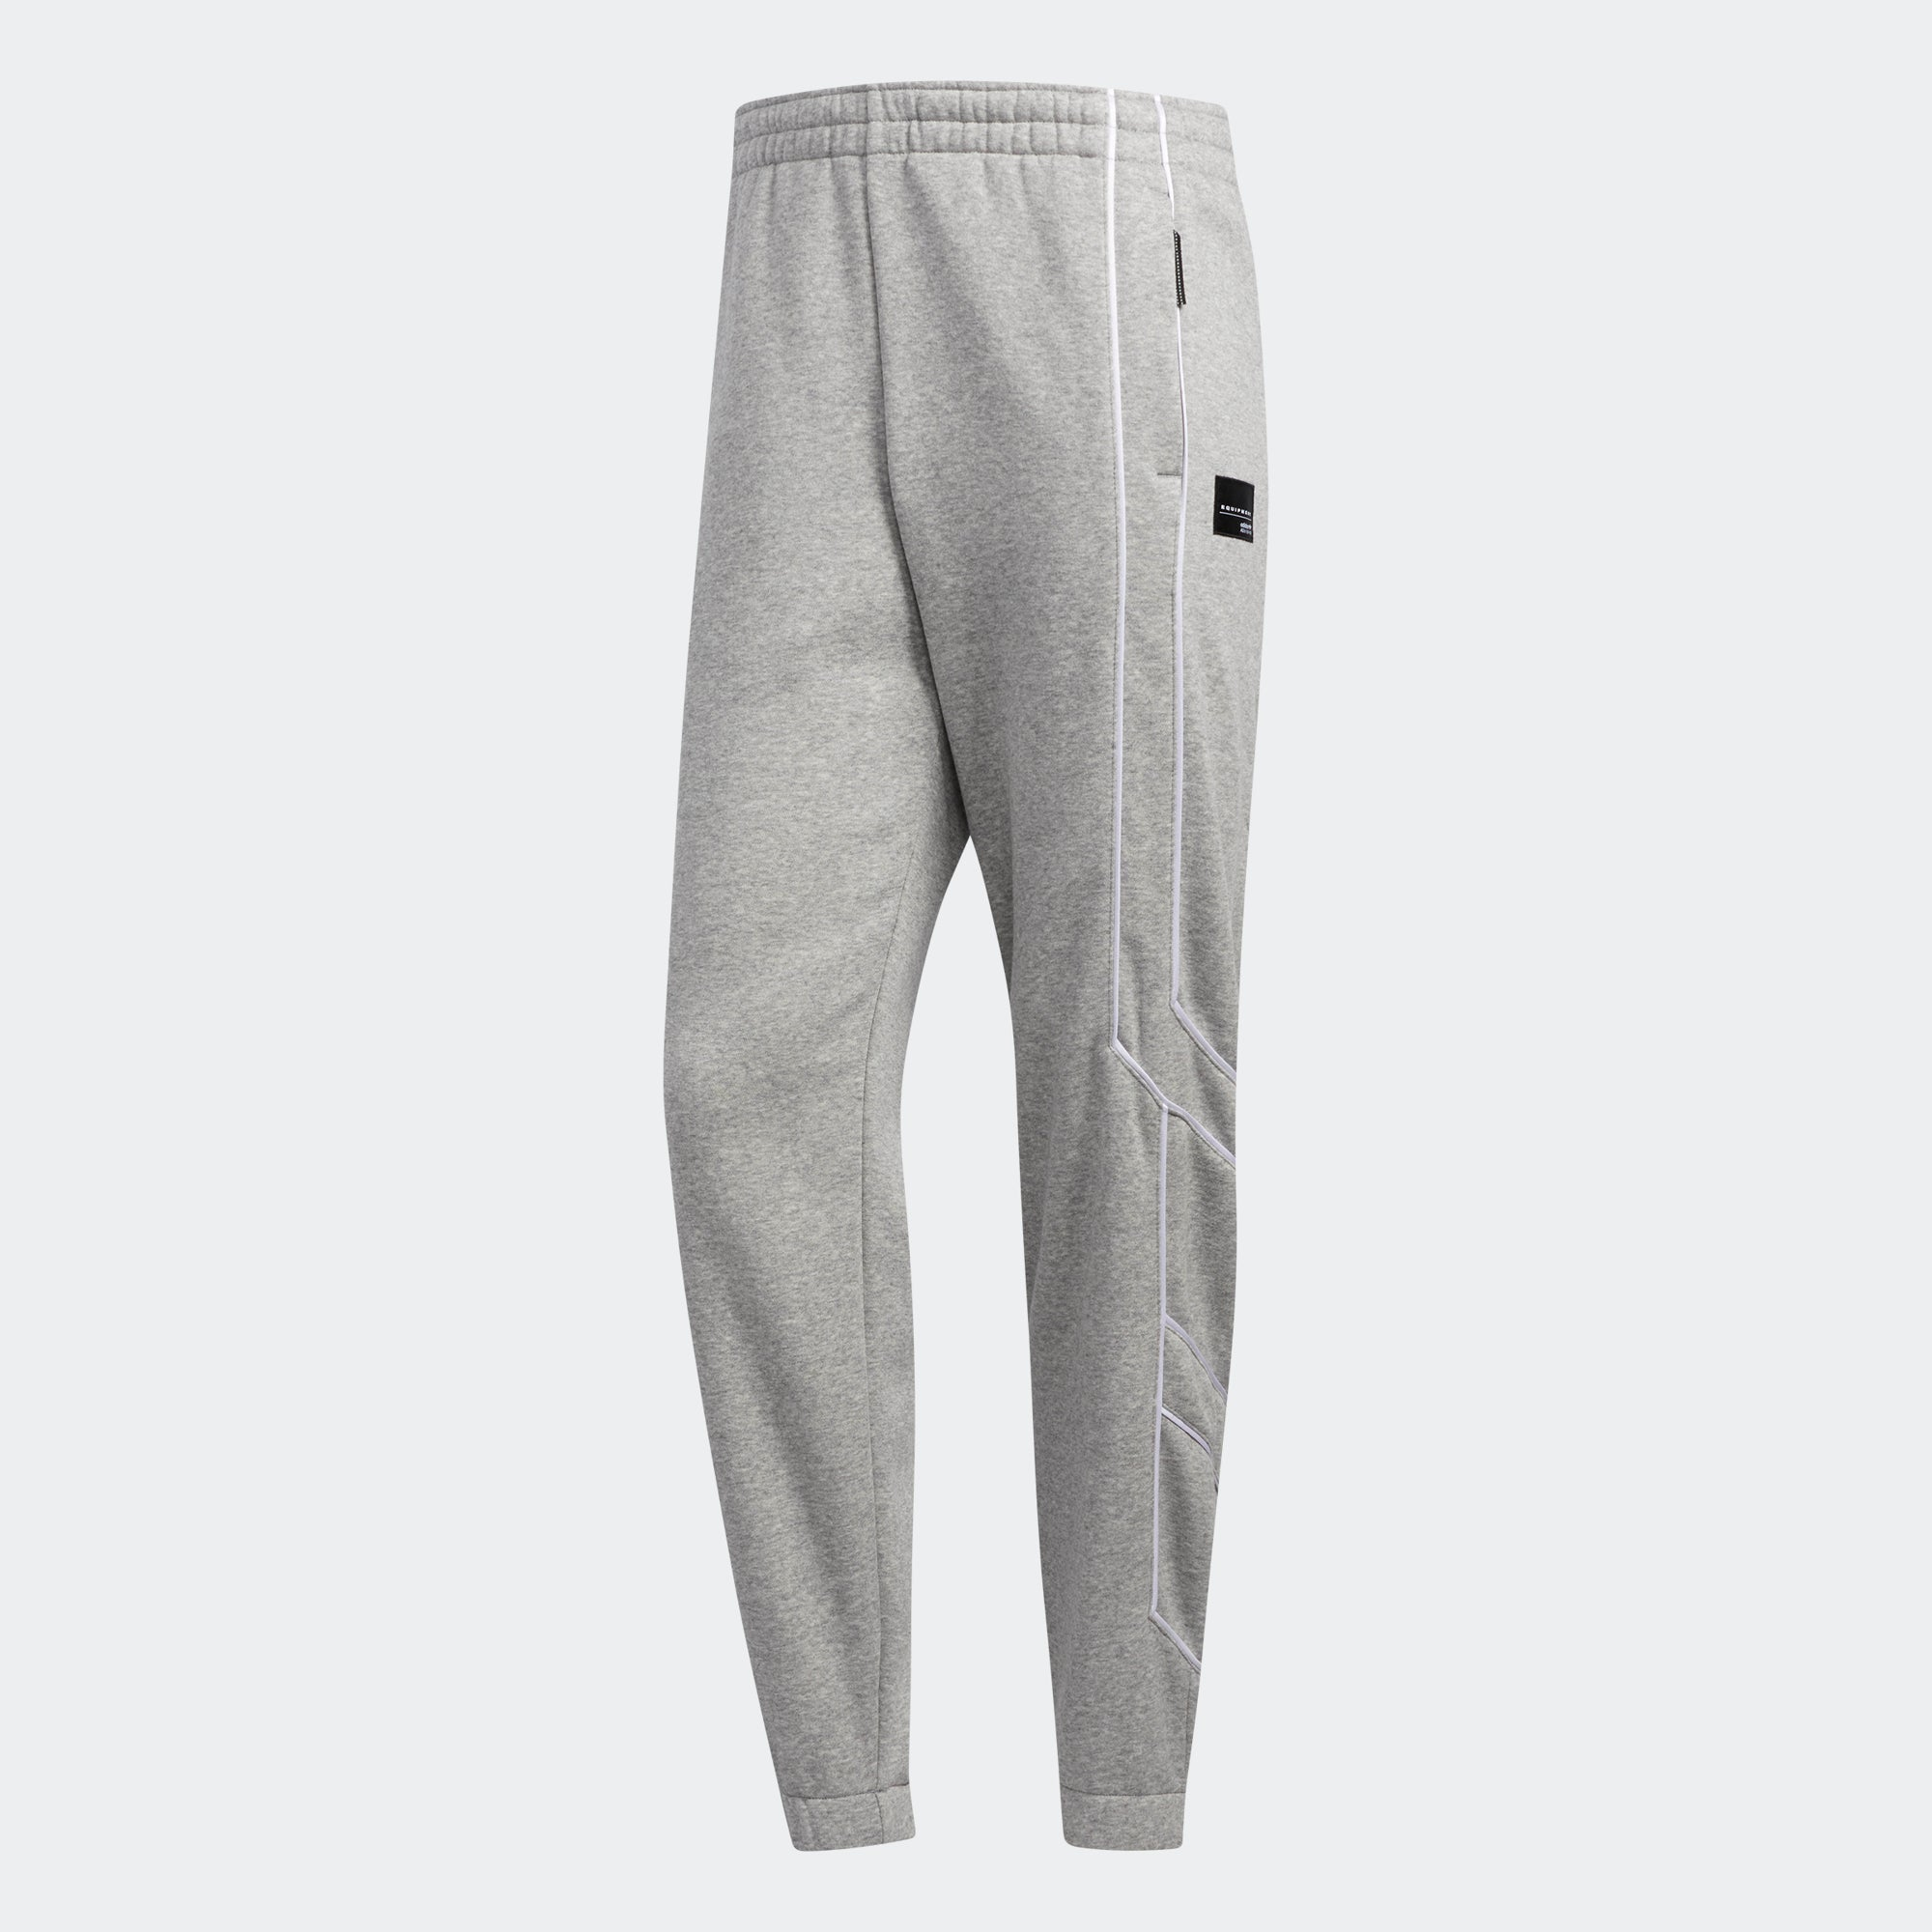 adidas EQT Outline Track Pants Grey DH5224 | Chicago City Sports